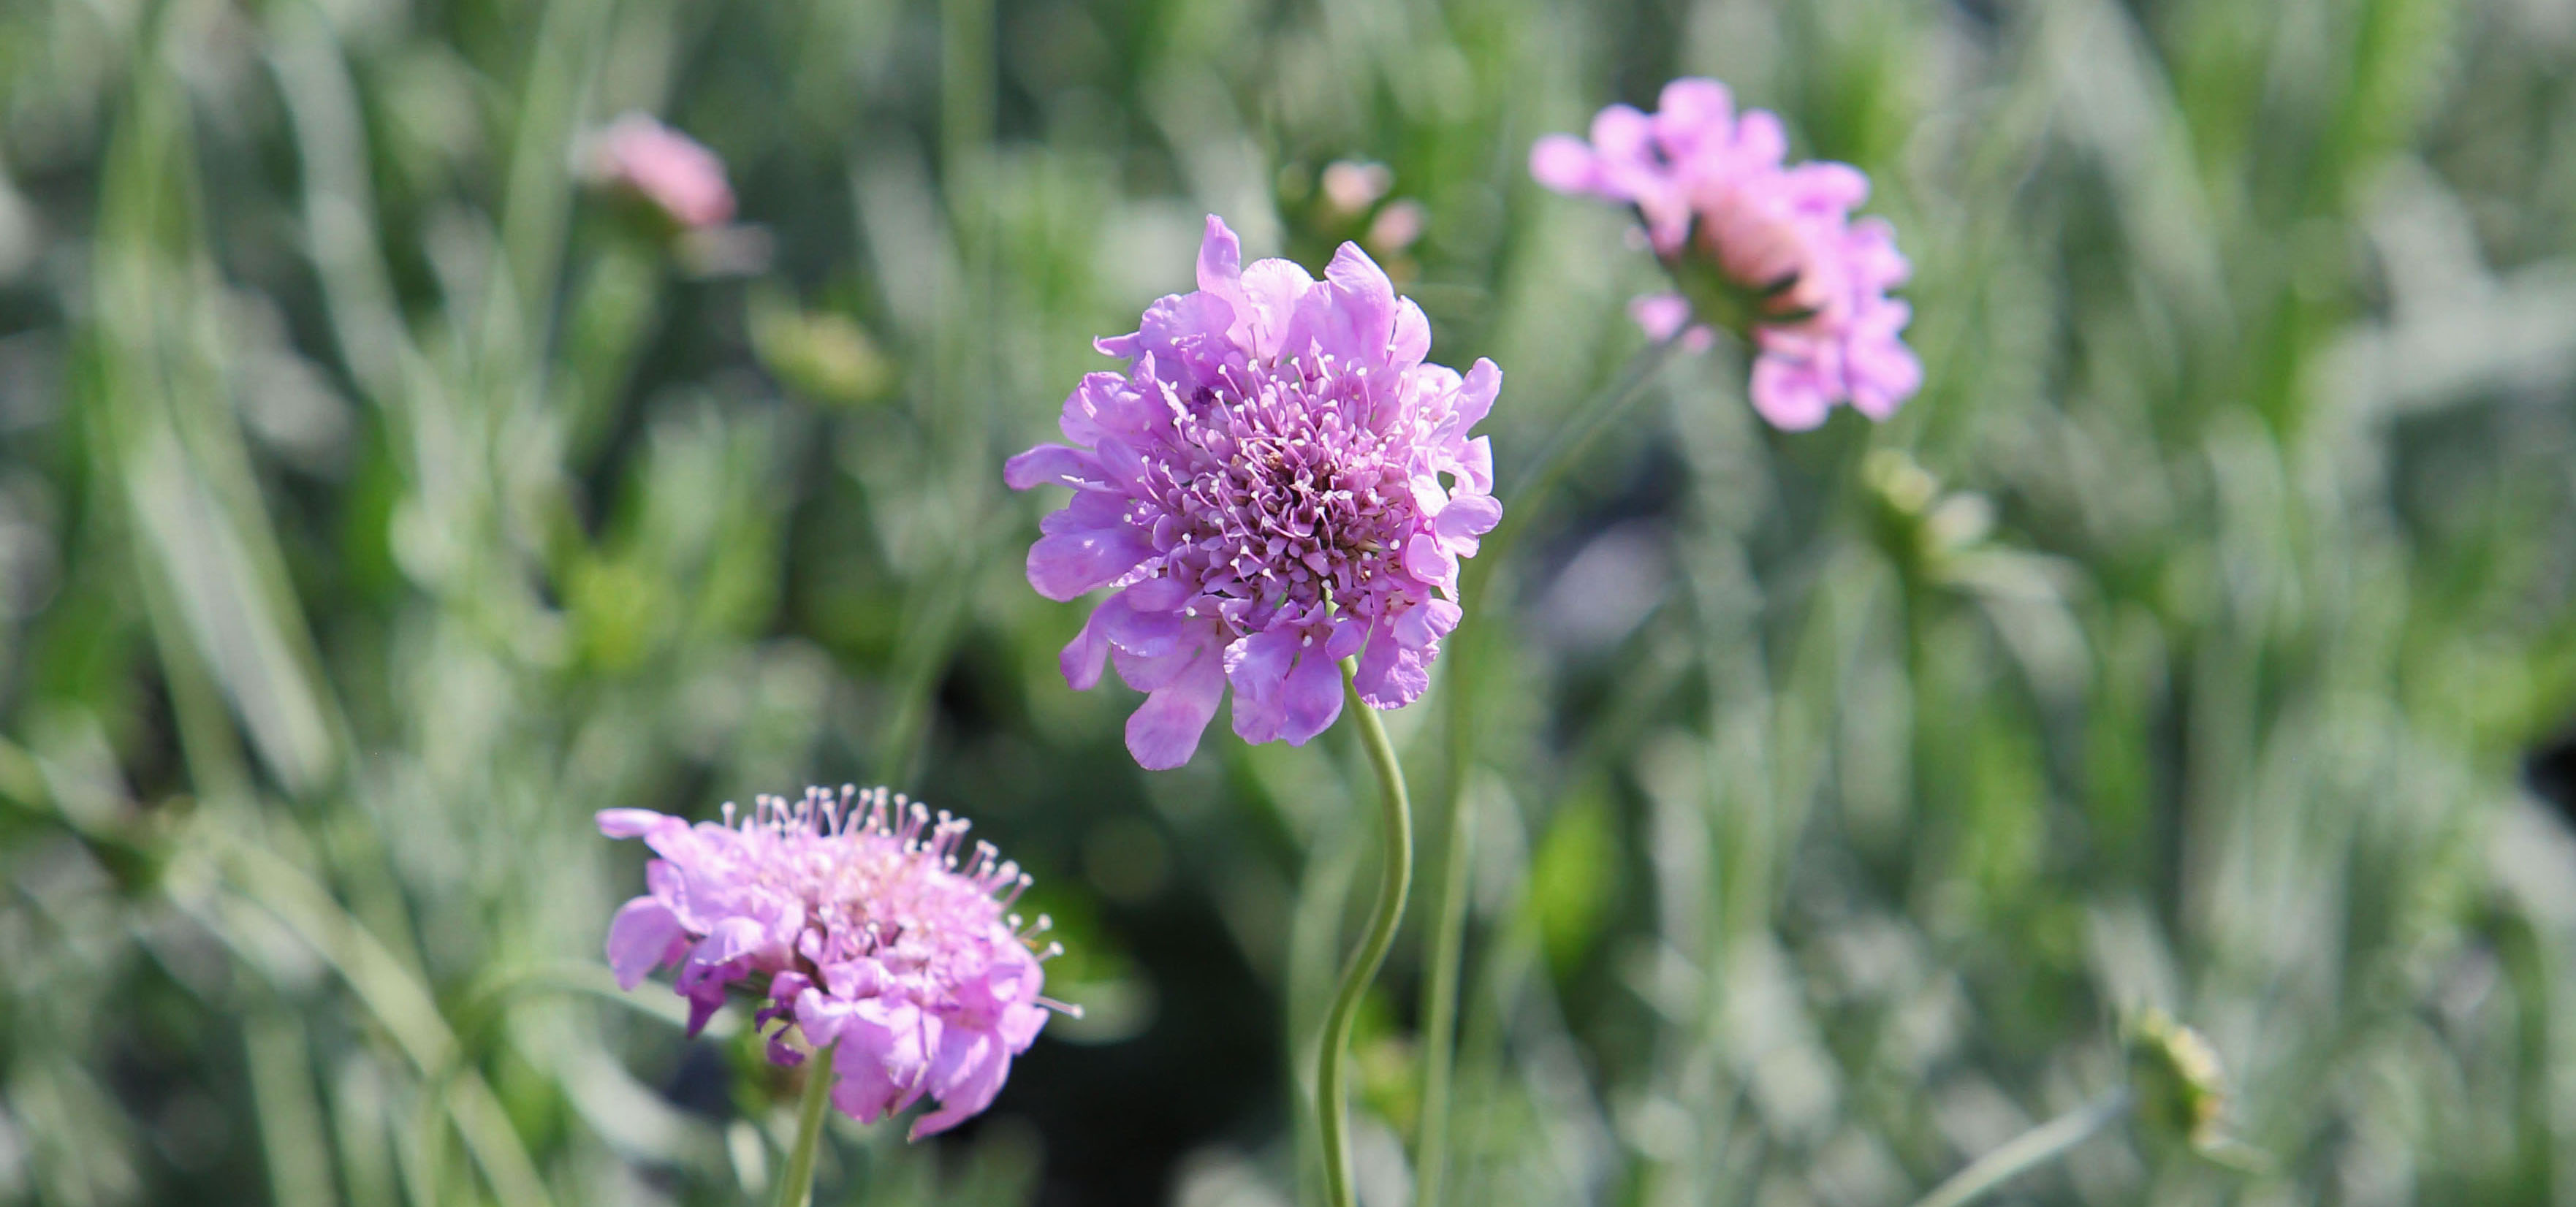 Scabiosa Pincushion Flower